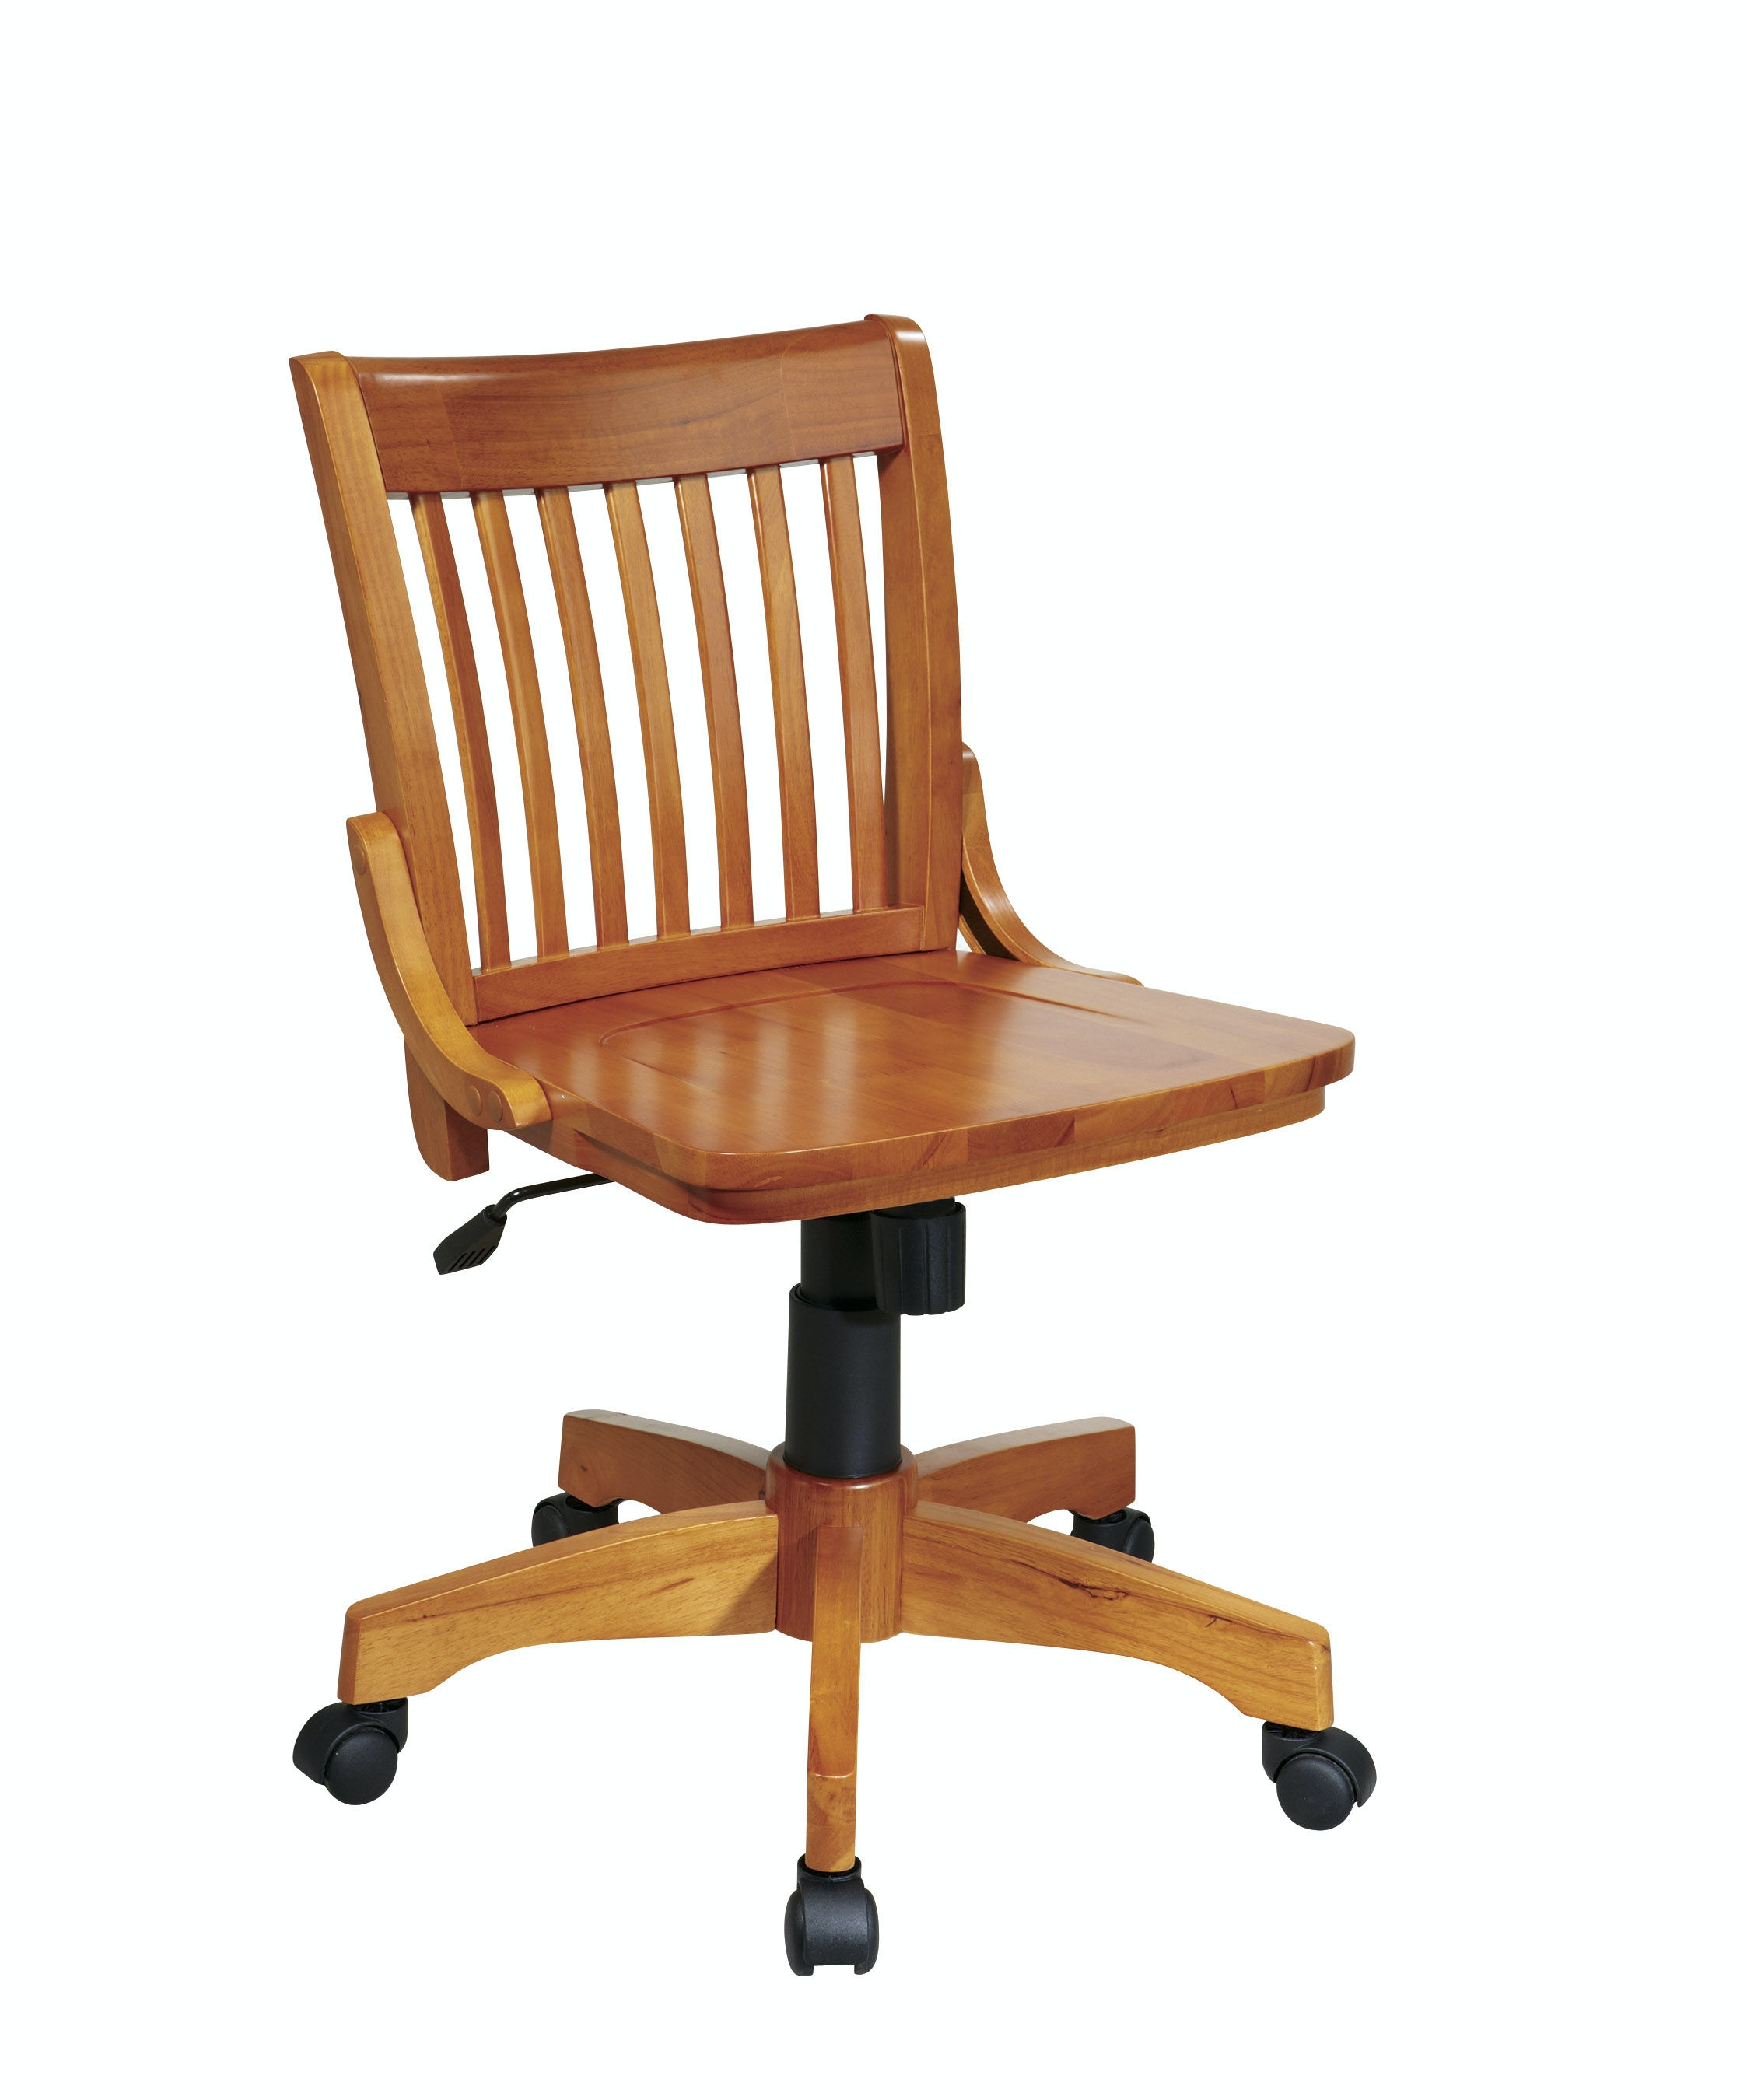 deluxe wooden home office. Office Star Products Deluxe Armless Wood Bankeru0027s Chair 101FW Wooden Home E